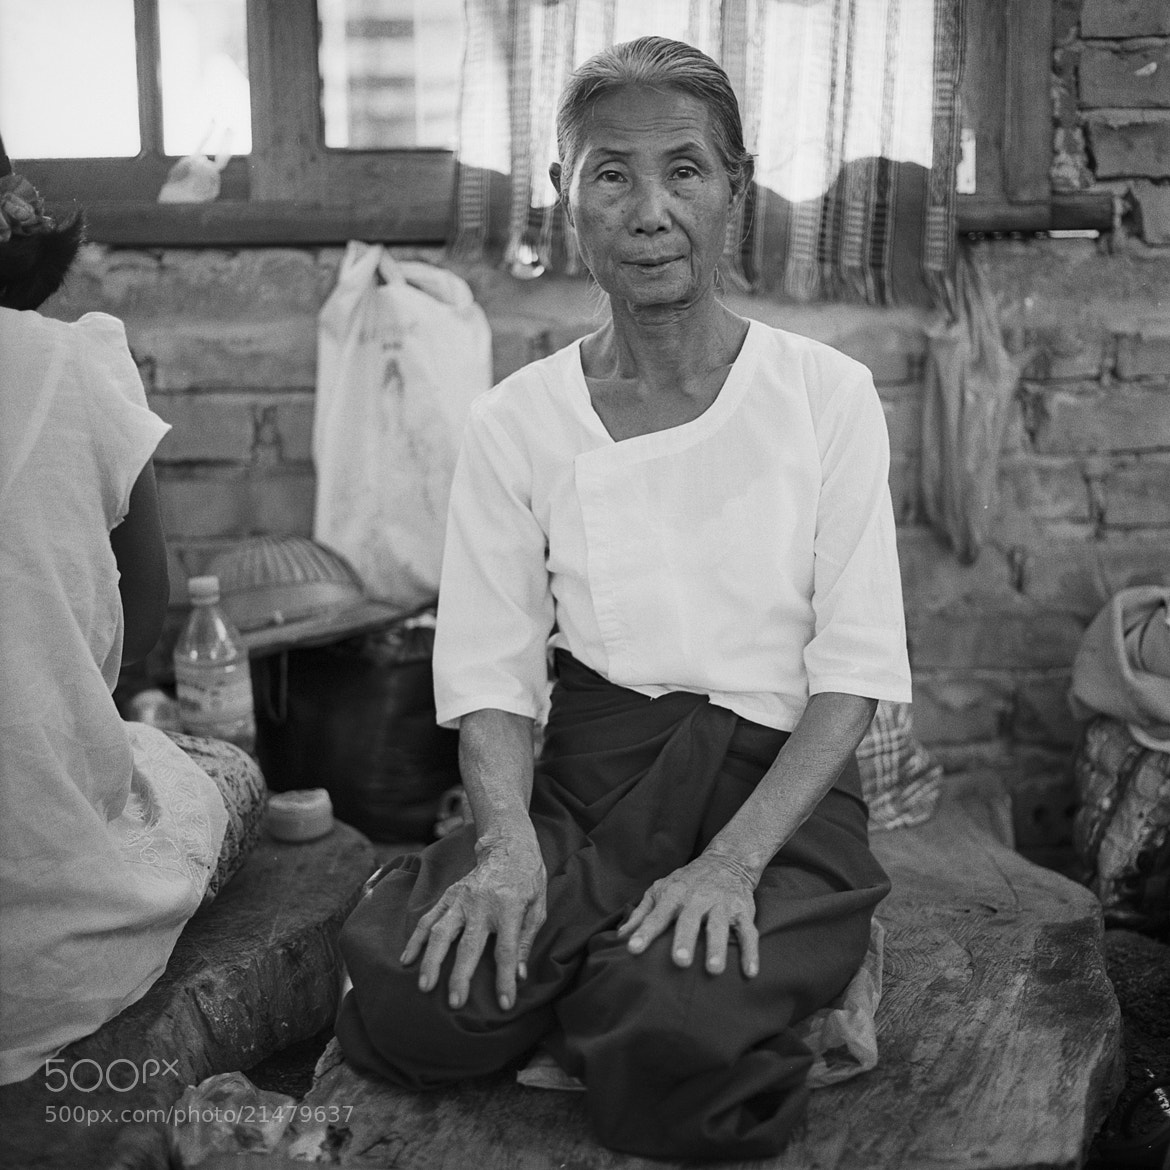 Photograph lady, meditation center for the homeless by  momofuku on 500px